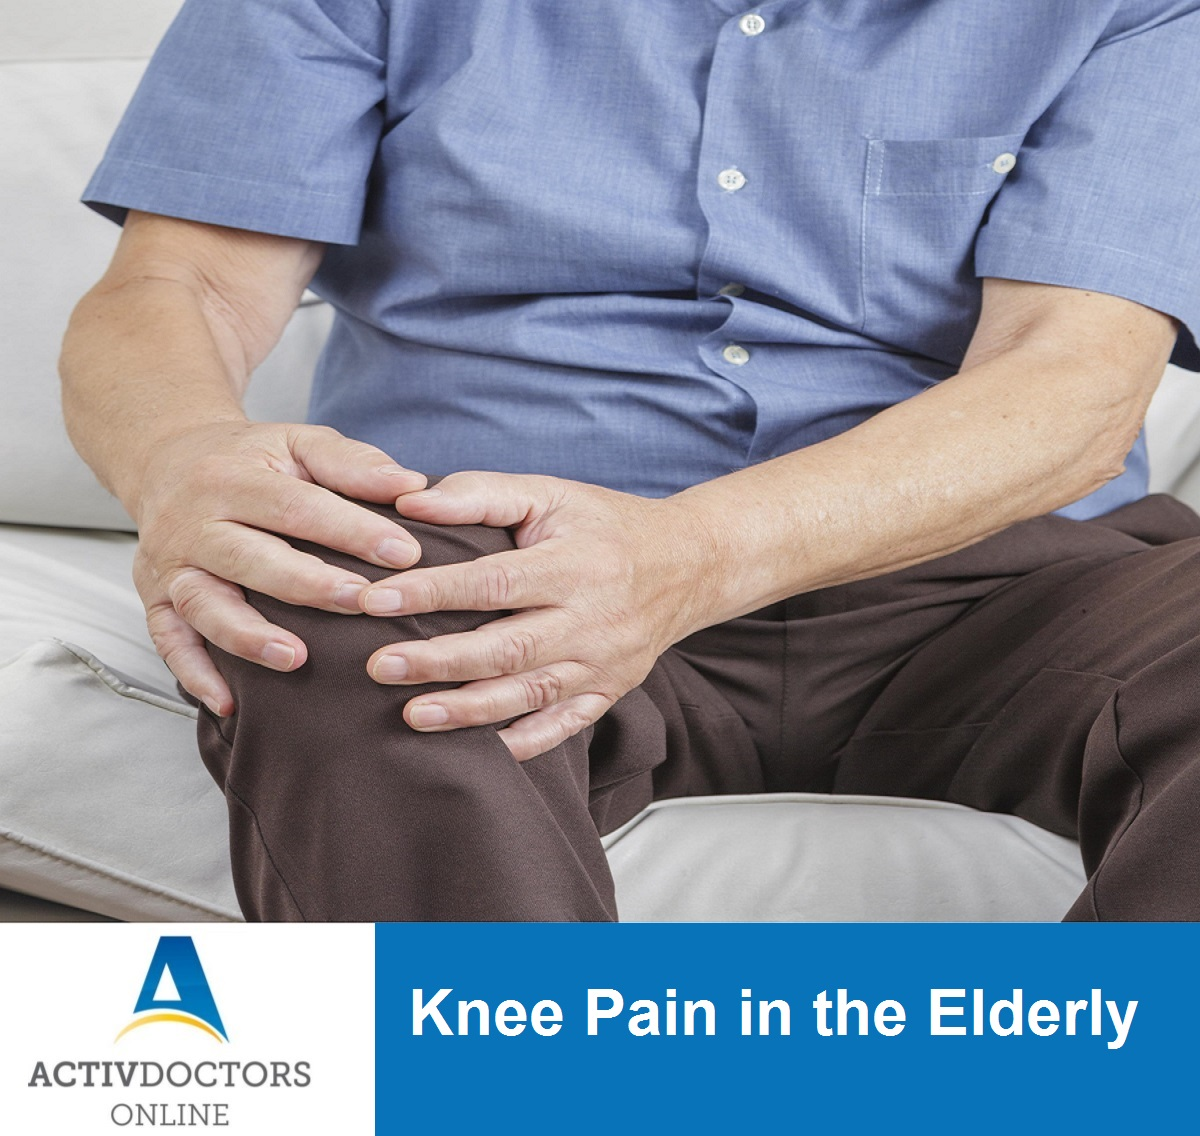 Knee Pain in the Elderly